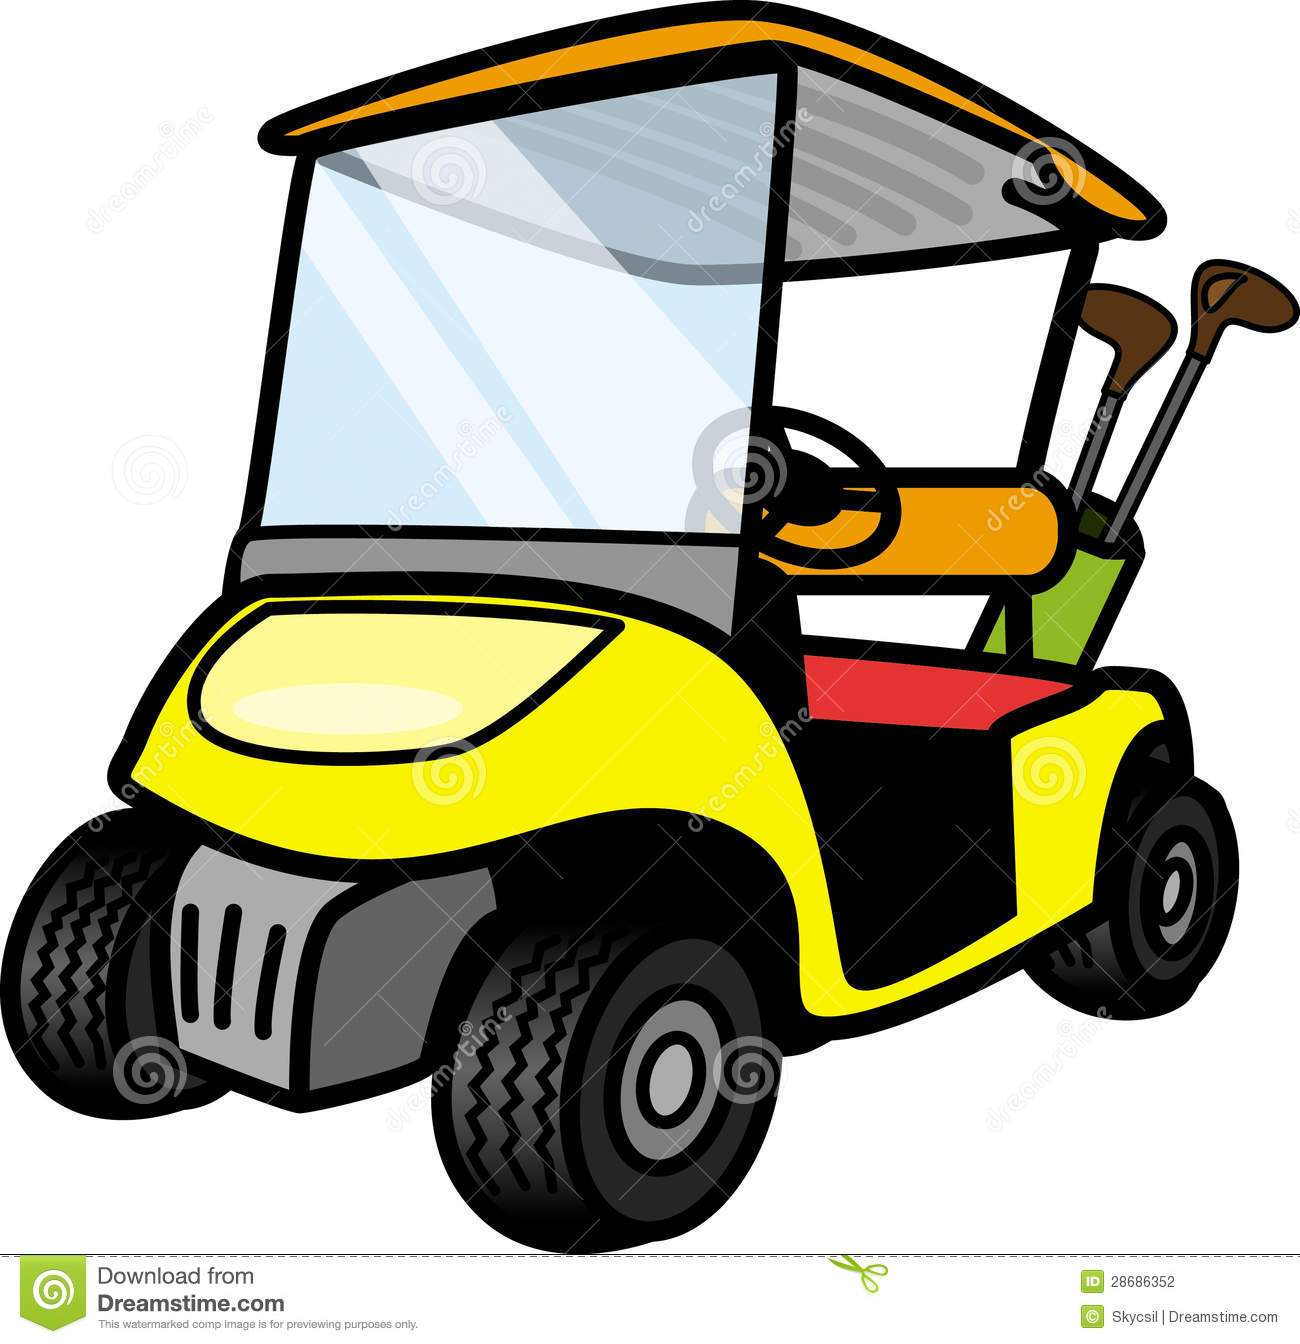 Golfcart clipart graphic free download Free golf cart clipart 6 » Clipart Portal graphic free download